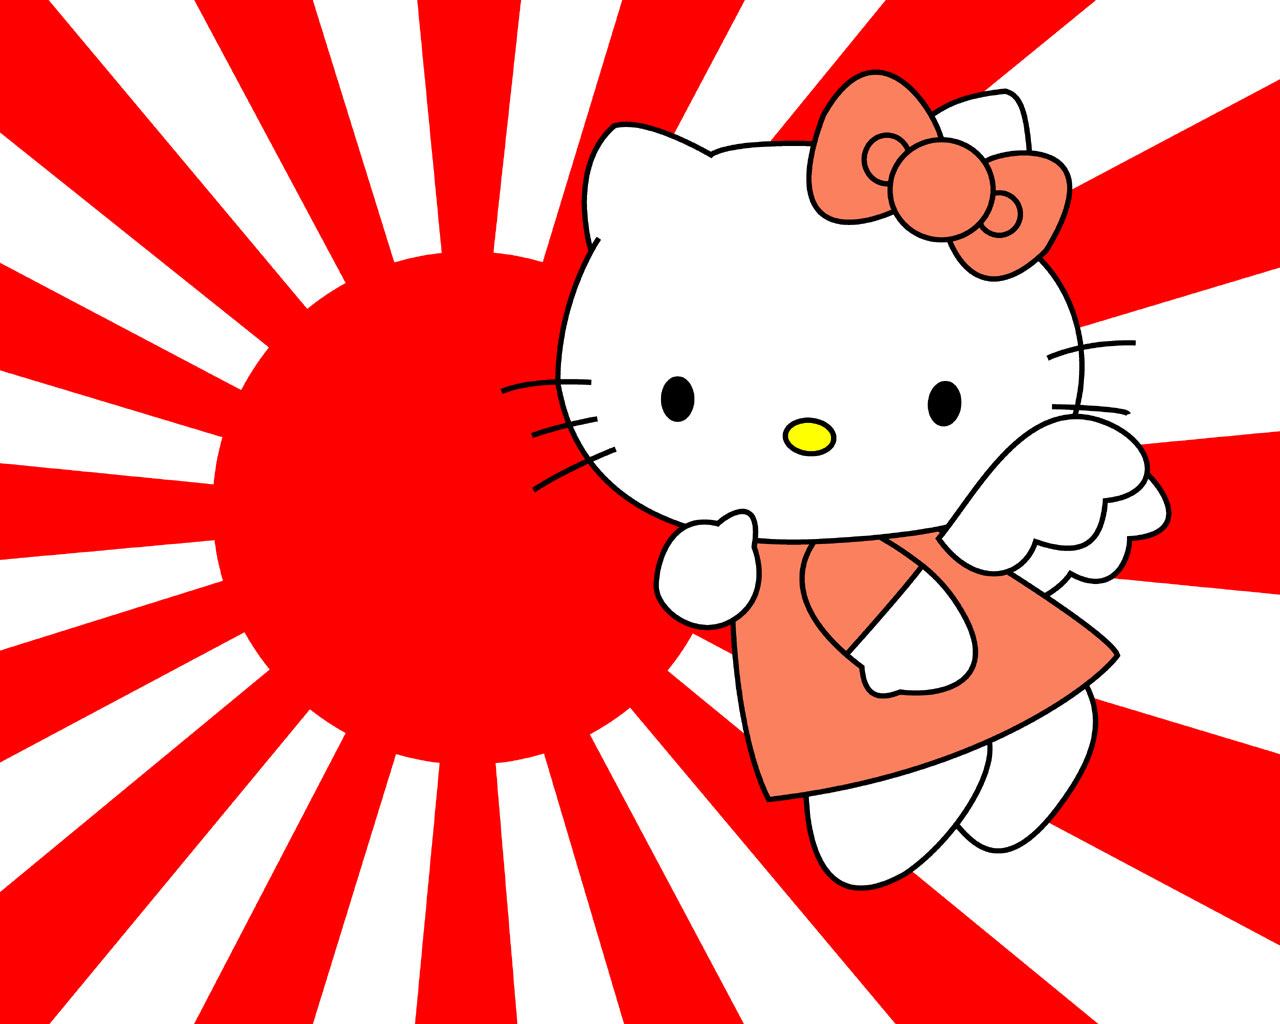 I think Hello Kitty is a cute little icon. There. I said it.